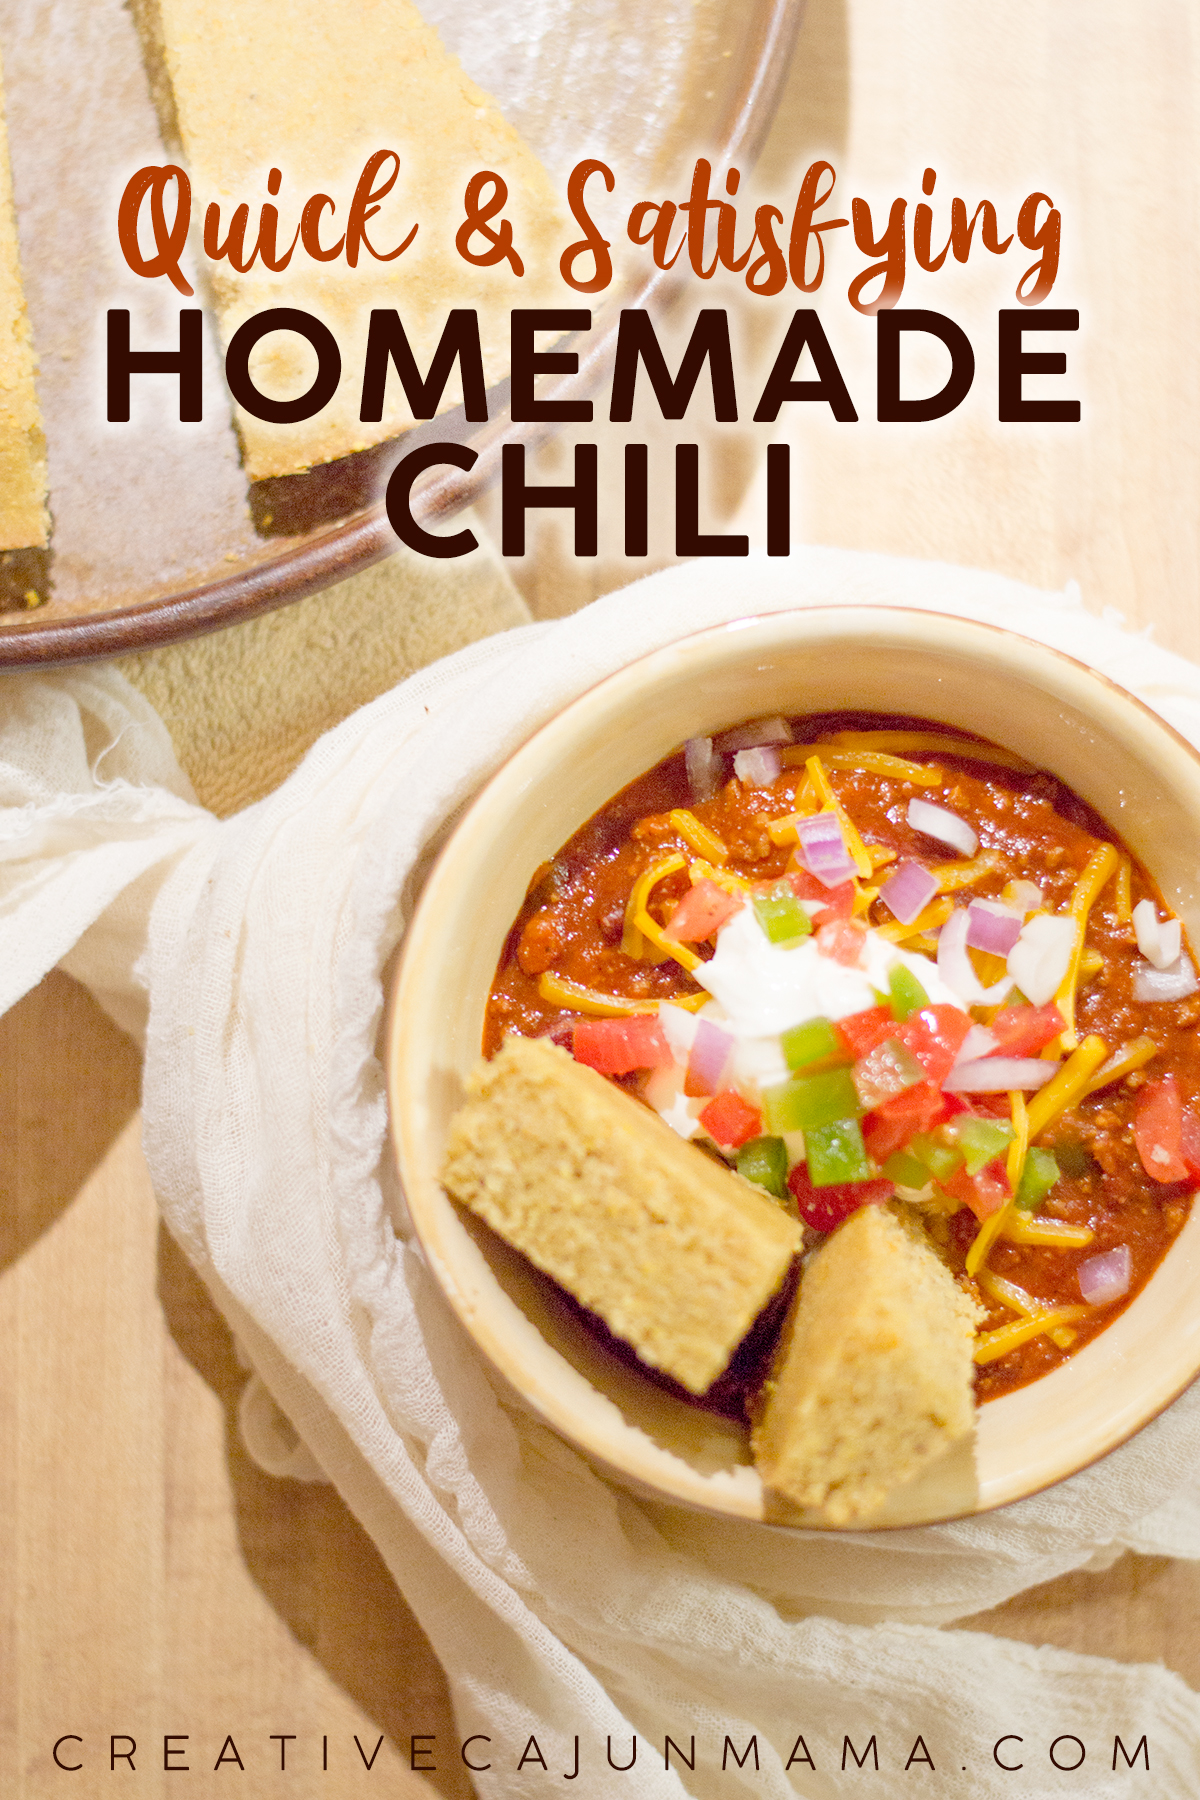 Quick + Satisfying Homemade Chili